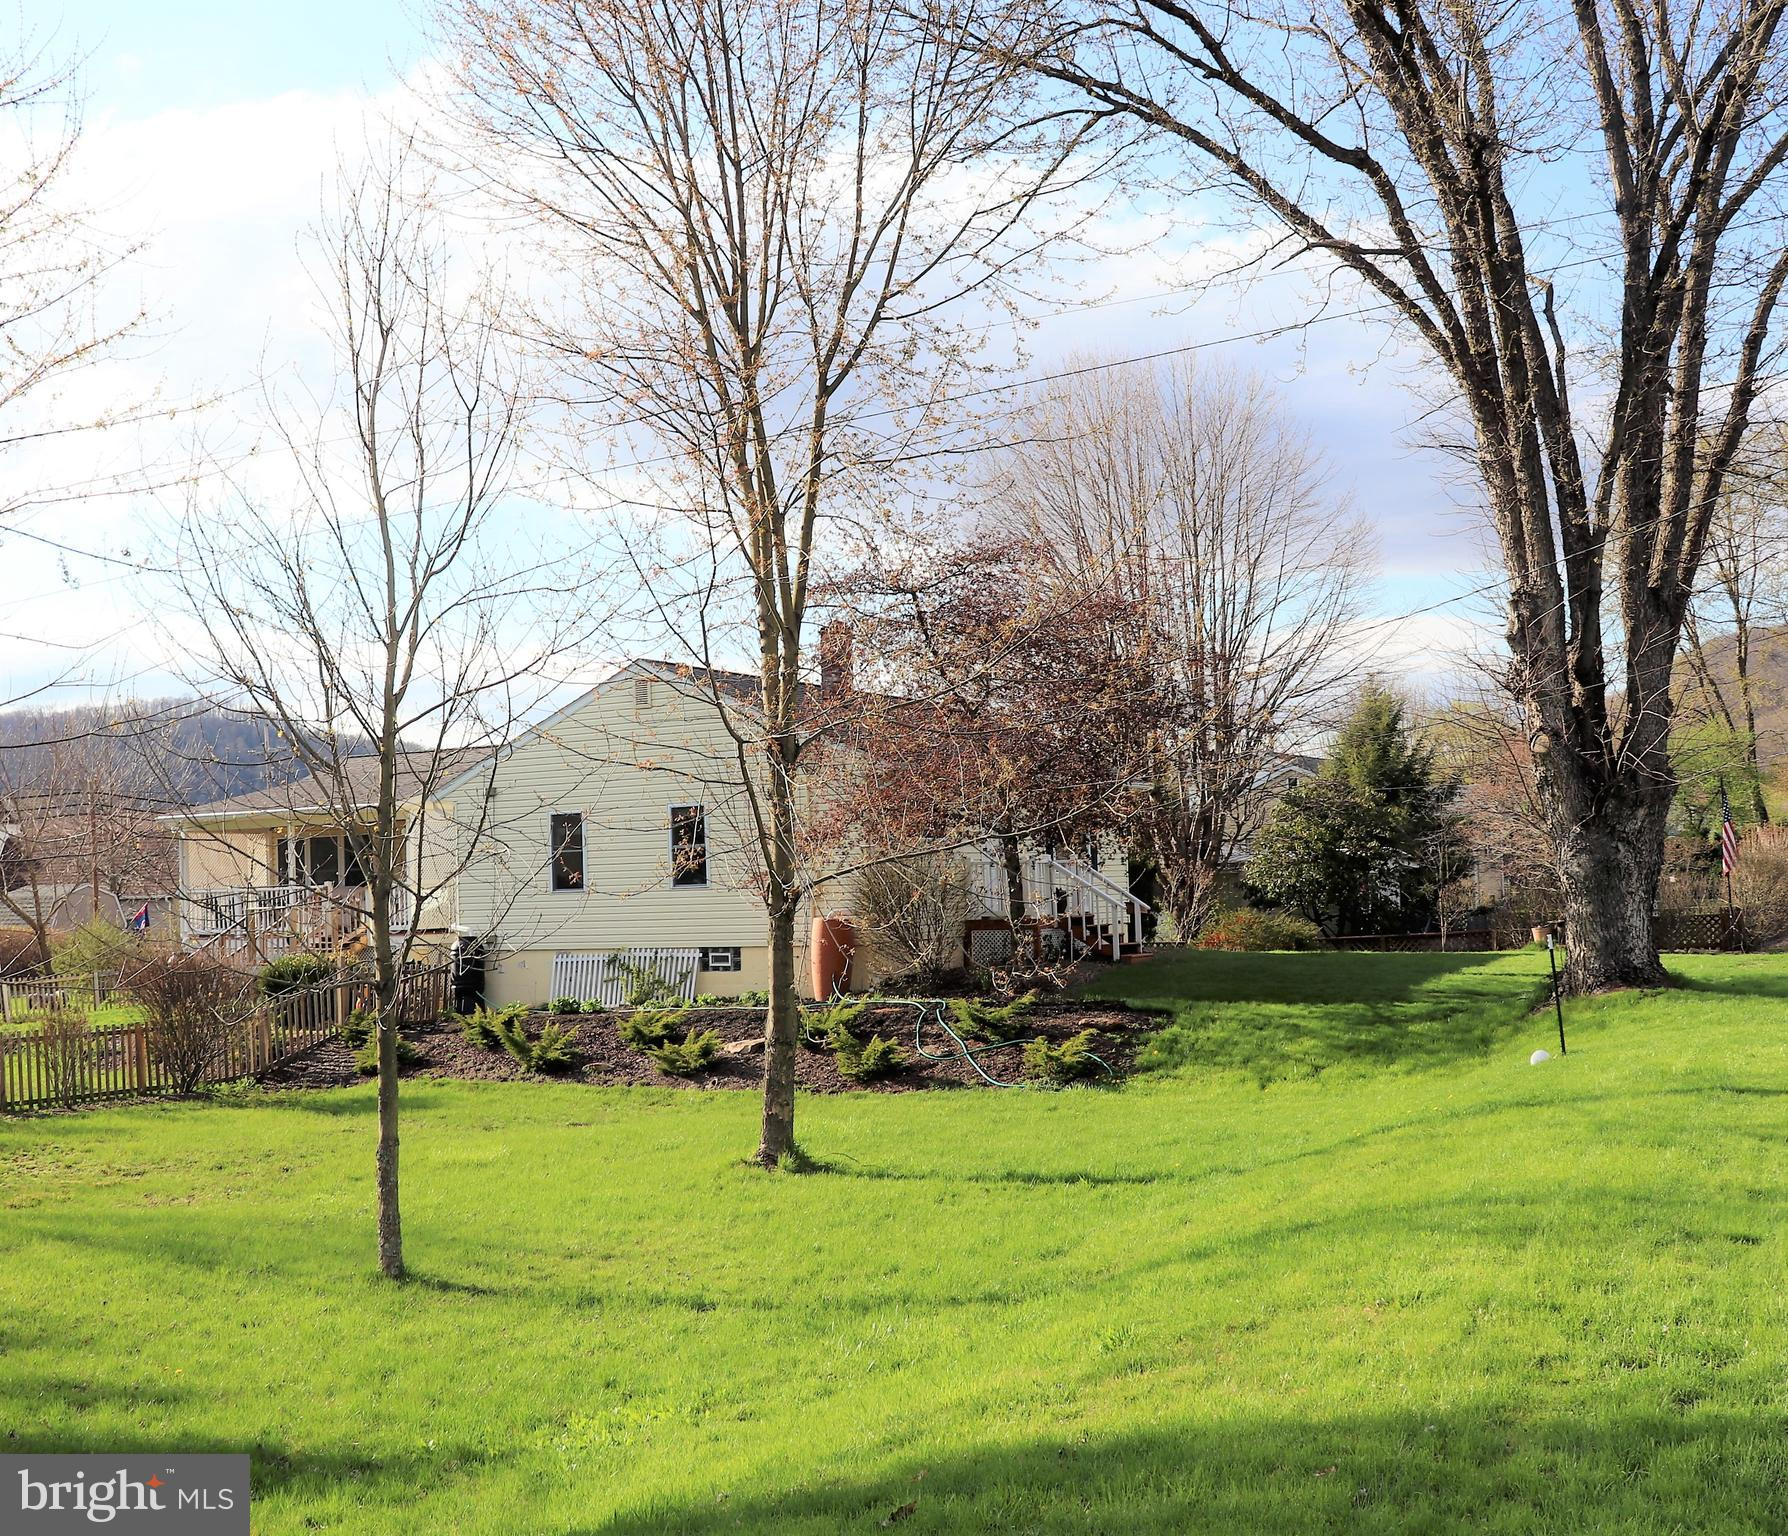 812 WILLIAMS ST, CONFLUENCE, PA 15424